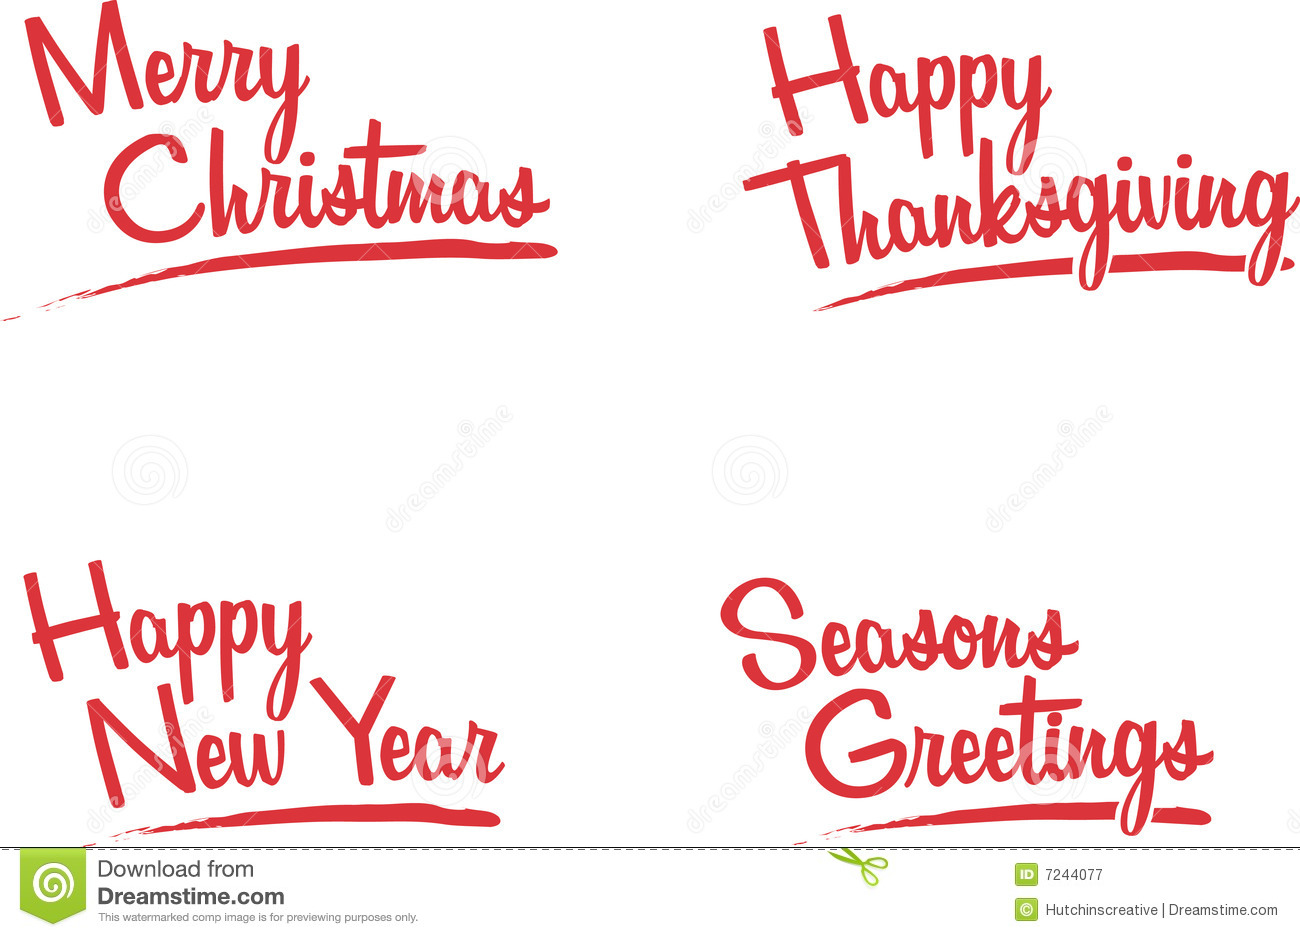 Season greetings words gidiyedformapolitica season greetings words m4hsunfo Choice Image